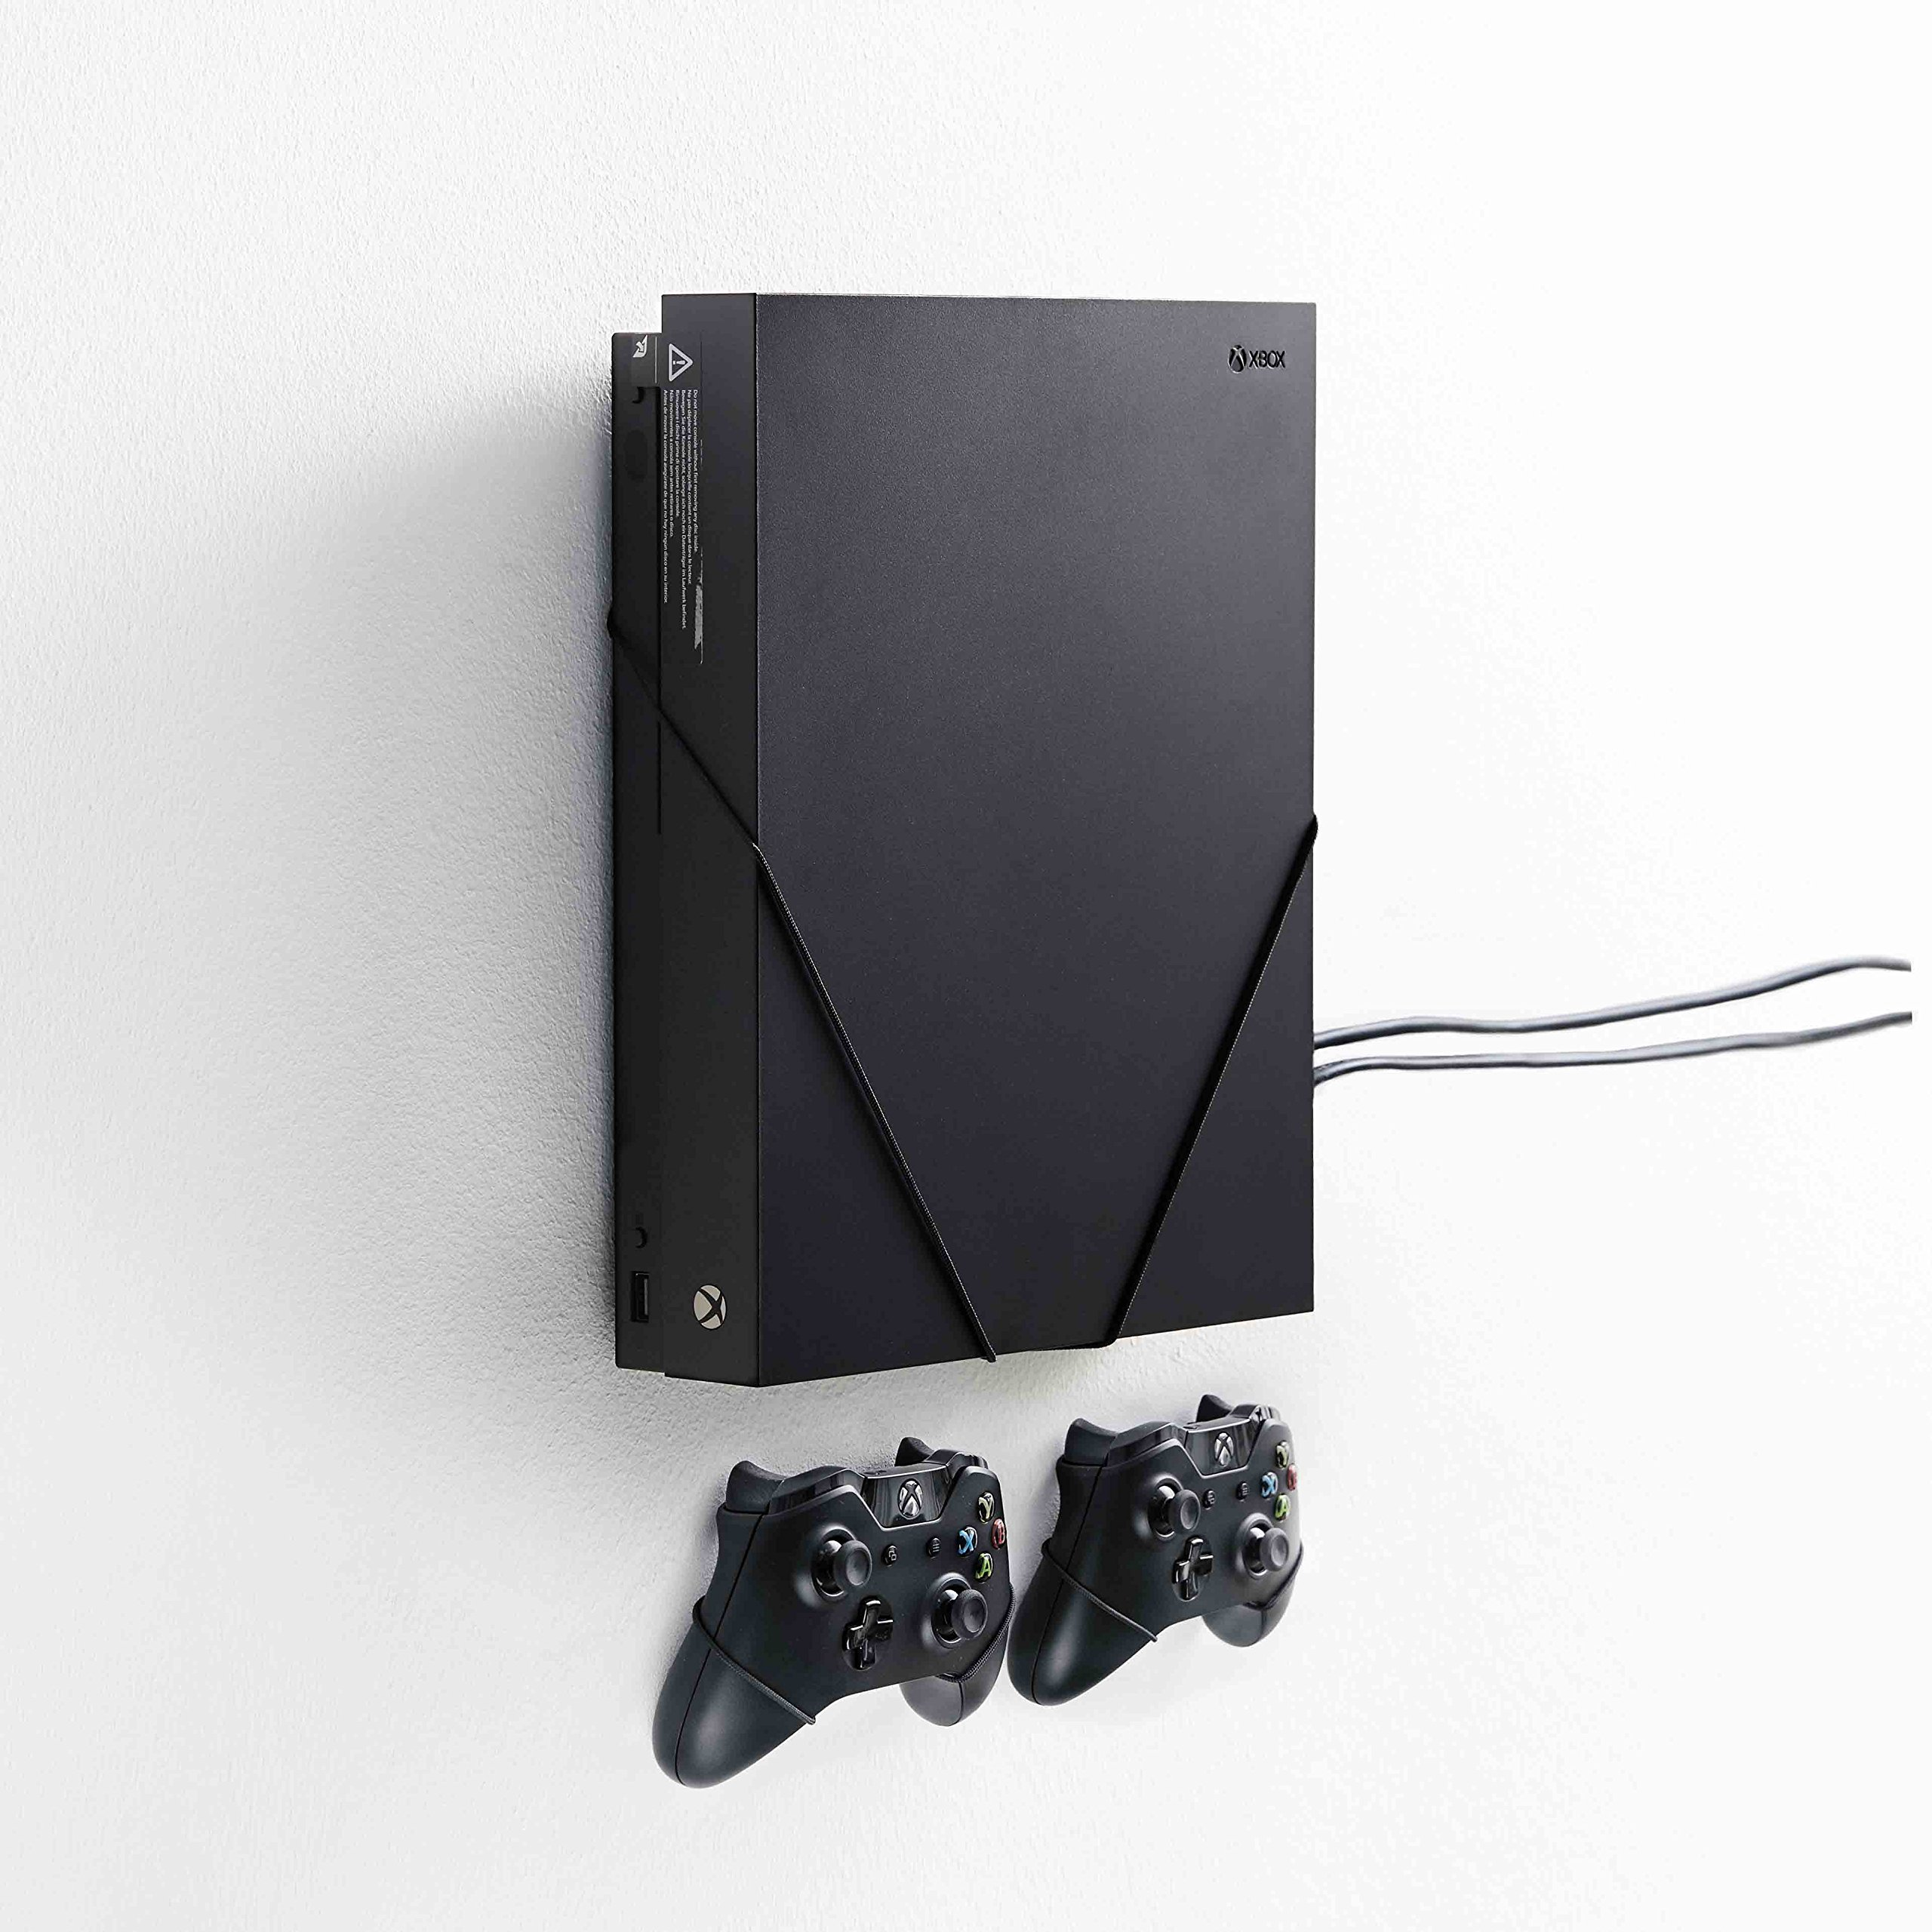 FLOATING GRIP mounts for Xbox One X, bundle package for Xbox One X and controllers, vertical rope wall mounts (black), Patent pending and proprietary design, Made in Denmark